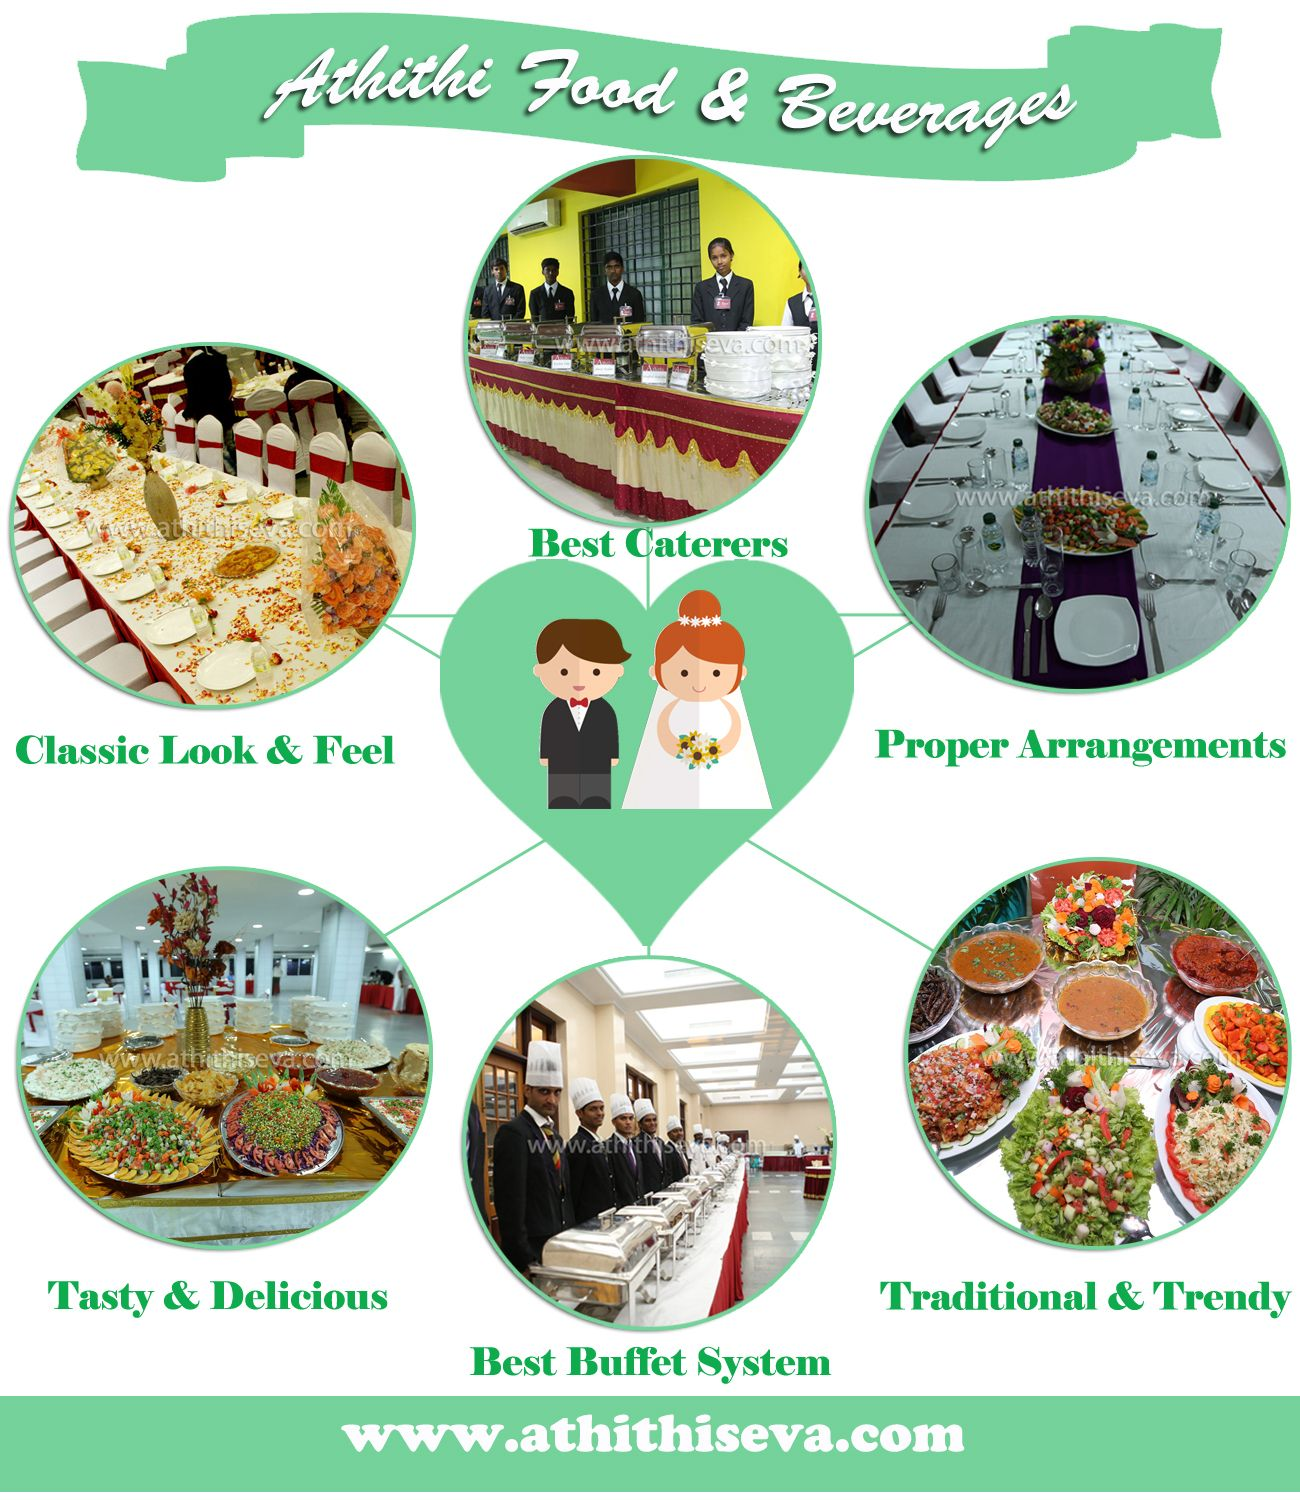 Athithi One Of The Best Catering Services In Chennai Is Ready To Cater To Your Needs The Sugge Wedding Catering Wedding Food Catering Wedding Catering Prices